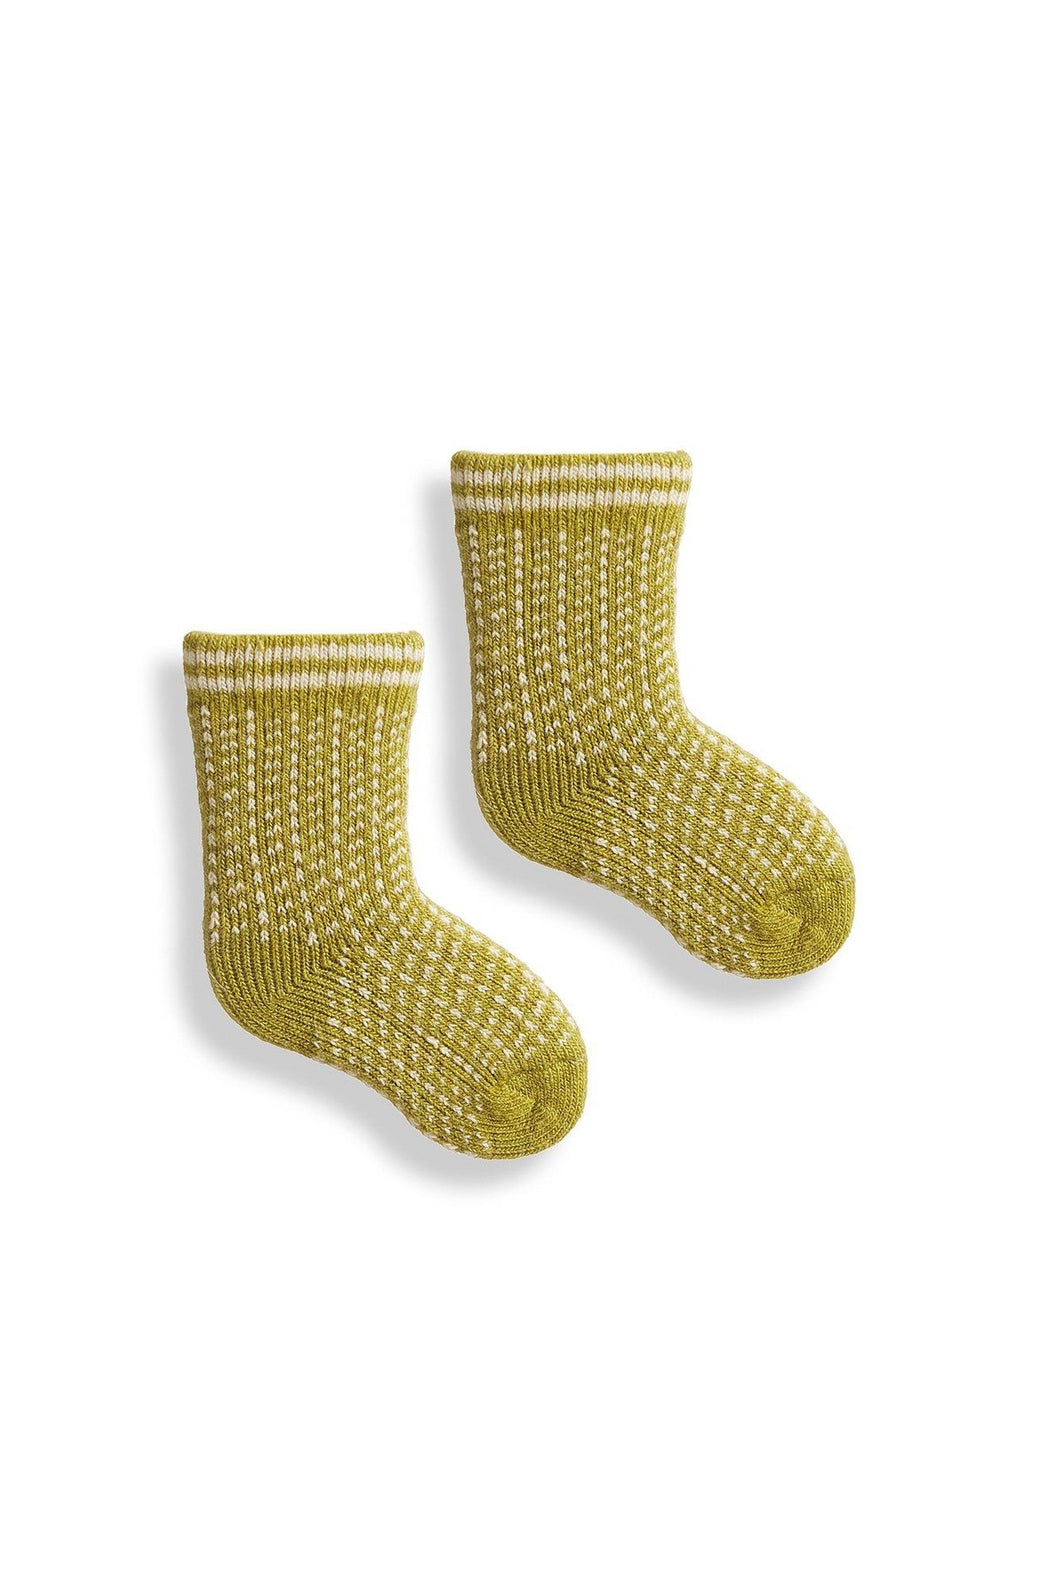 Lisa B, Crew Socks, Baby, Merino, Cashmere, Made in the USA, Sustainable, Ethically Produced, Apple Green, Nordic Birdseye